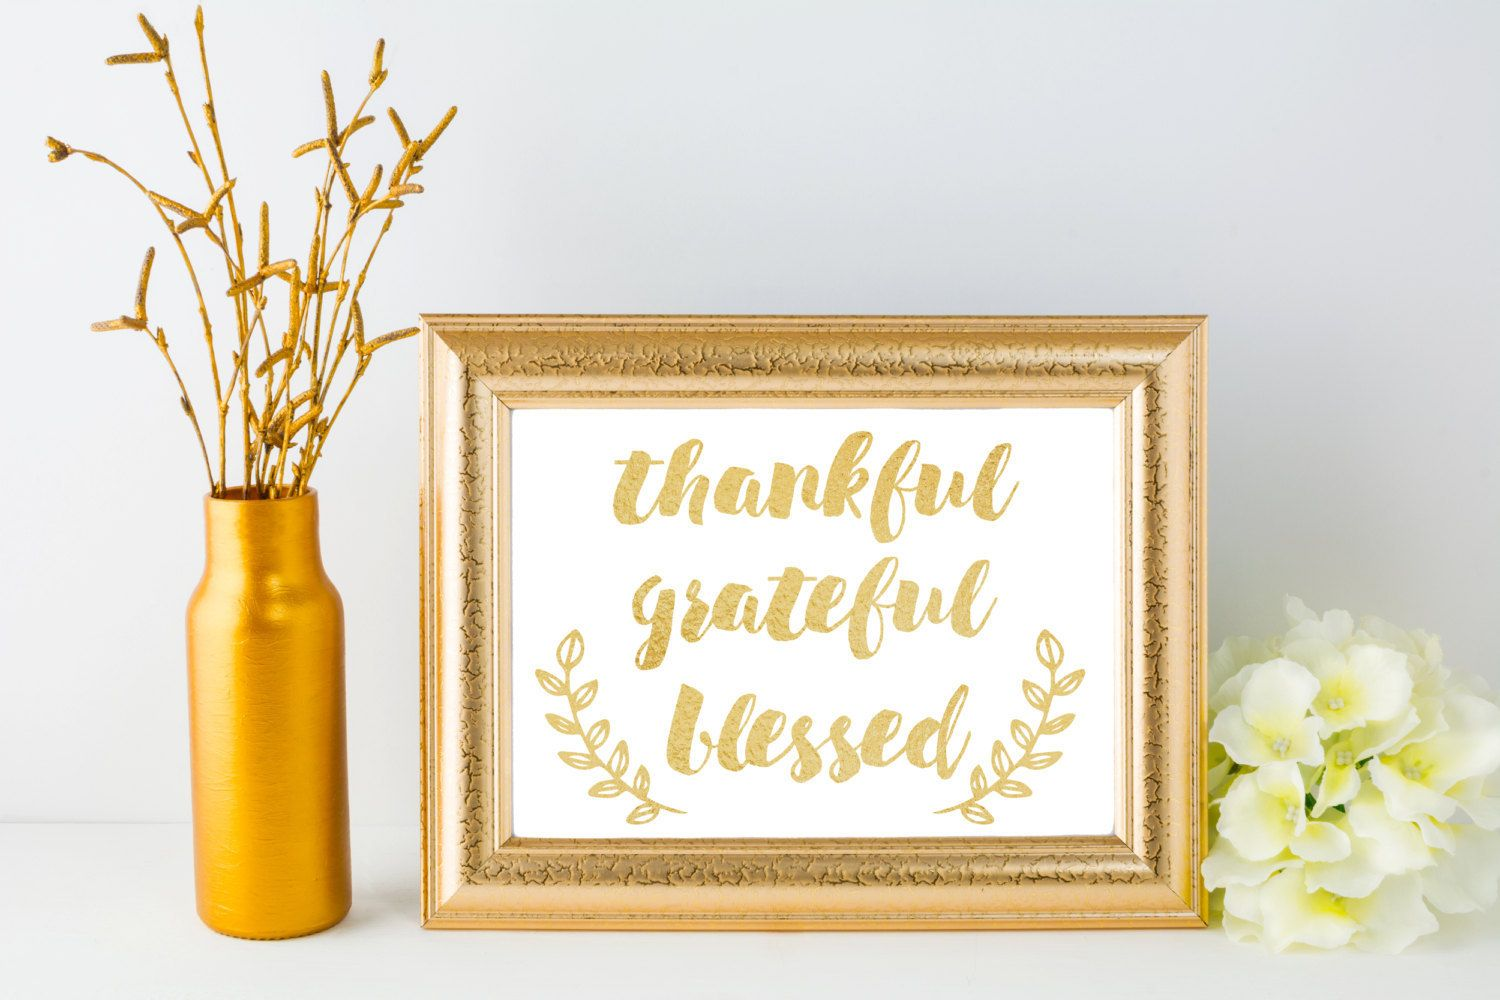 INSTANT DOWNLOAD Printable 8x10 Thankful, Grateful, Blessed Gold ...